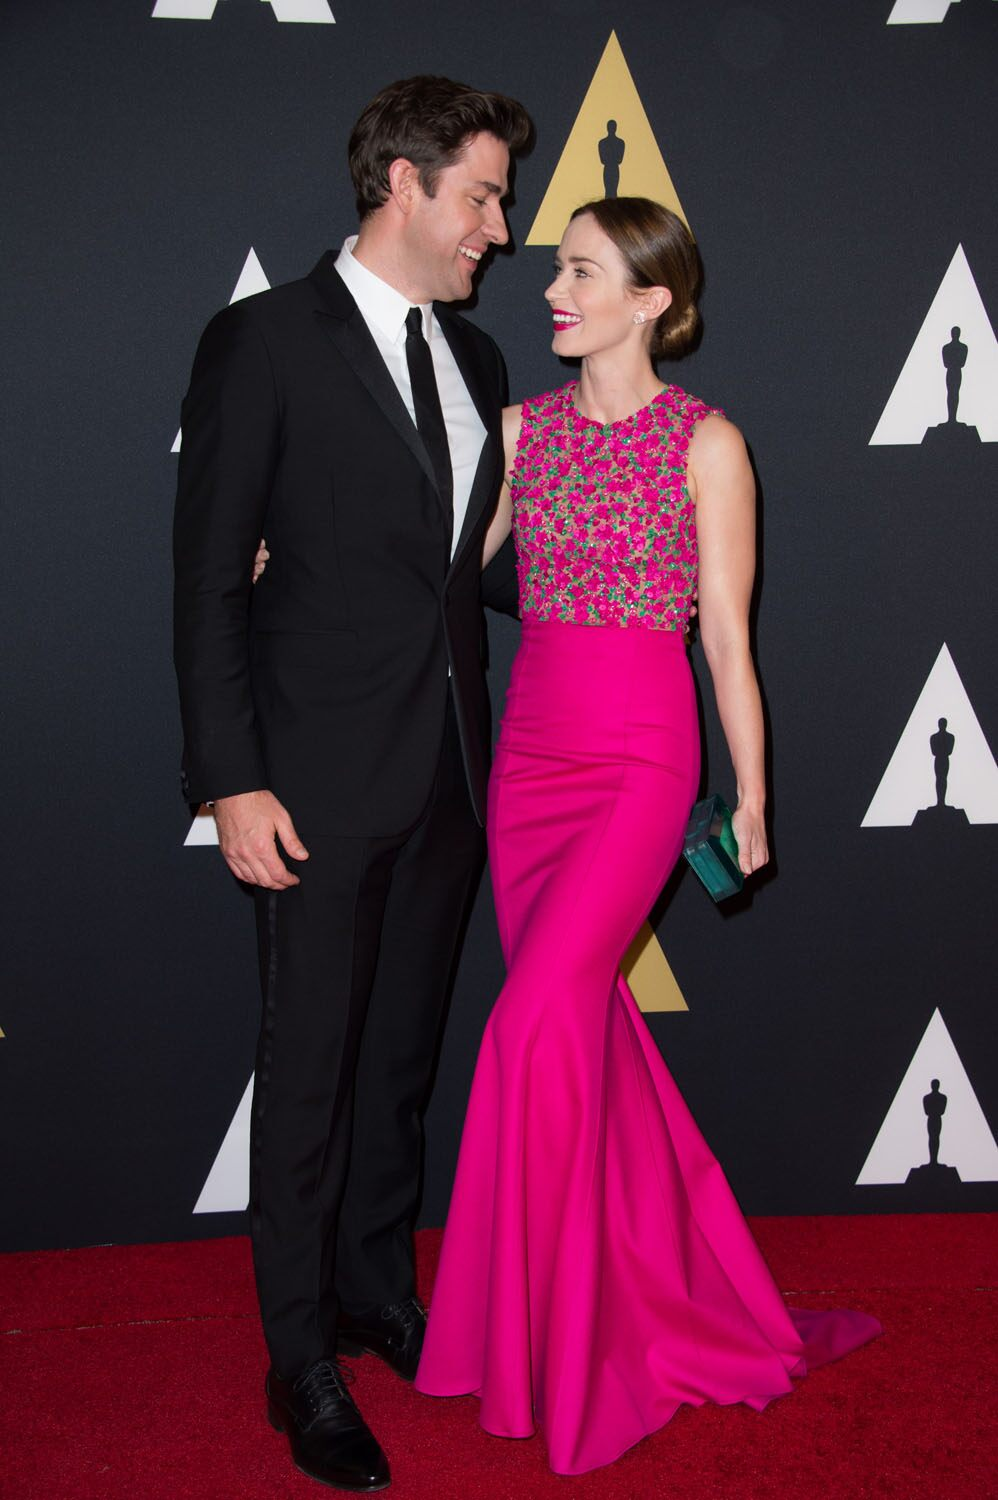 John Krasinski (left) and Emily Blunt at the 6th Annual Governors Awards